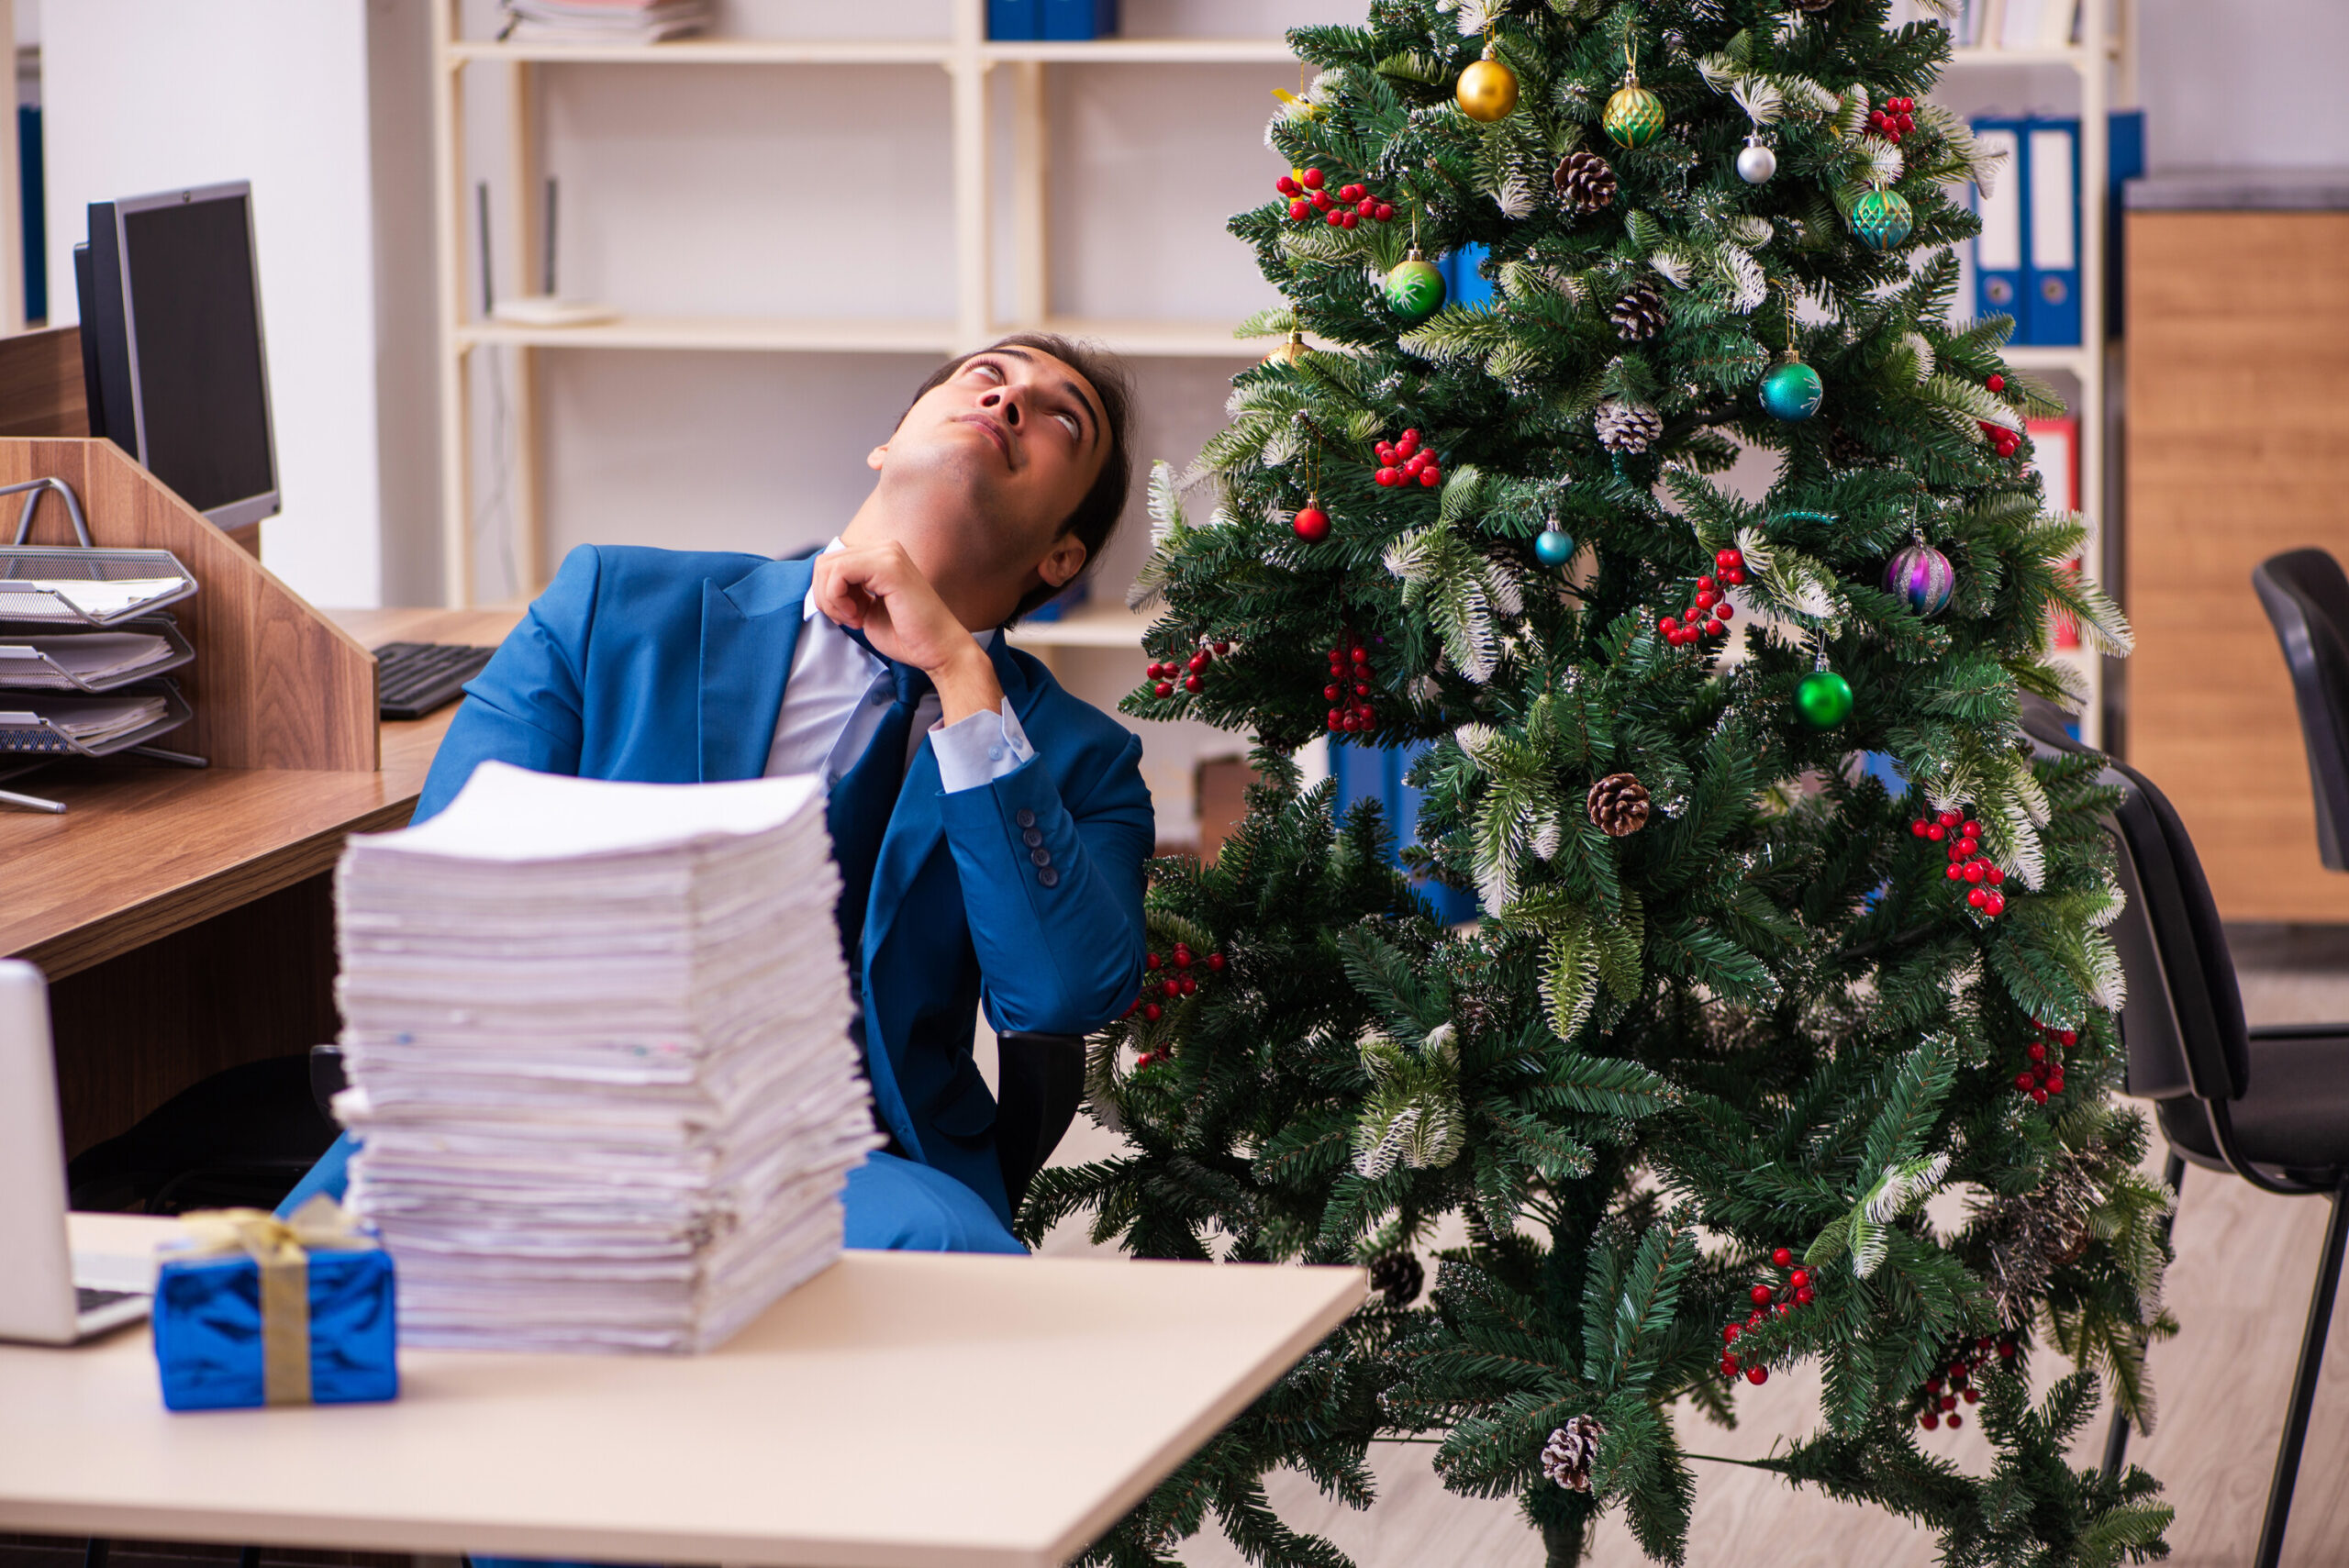 Find out how to avoid employee burnout during the holidays here!